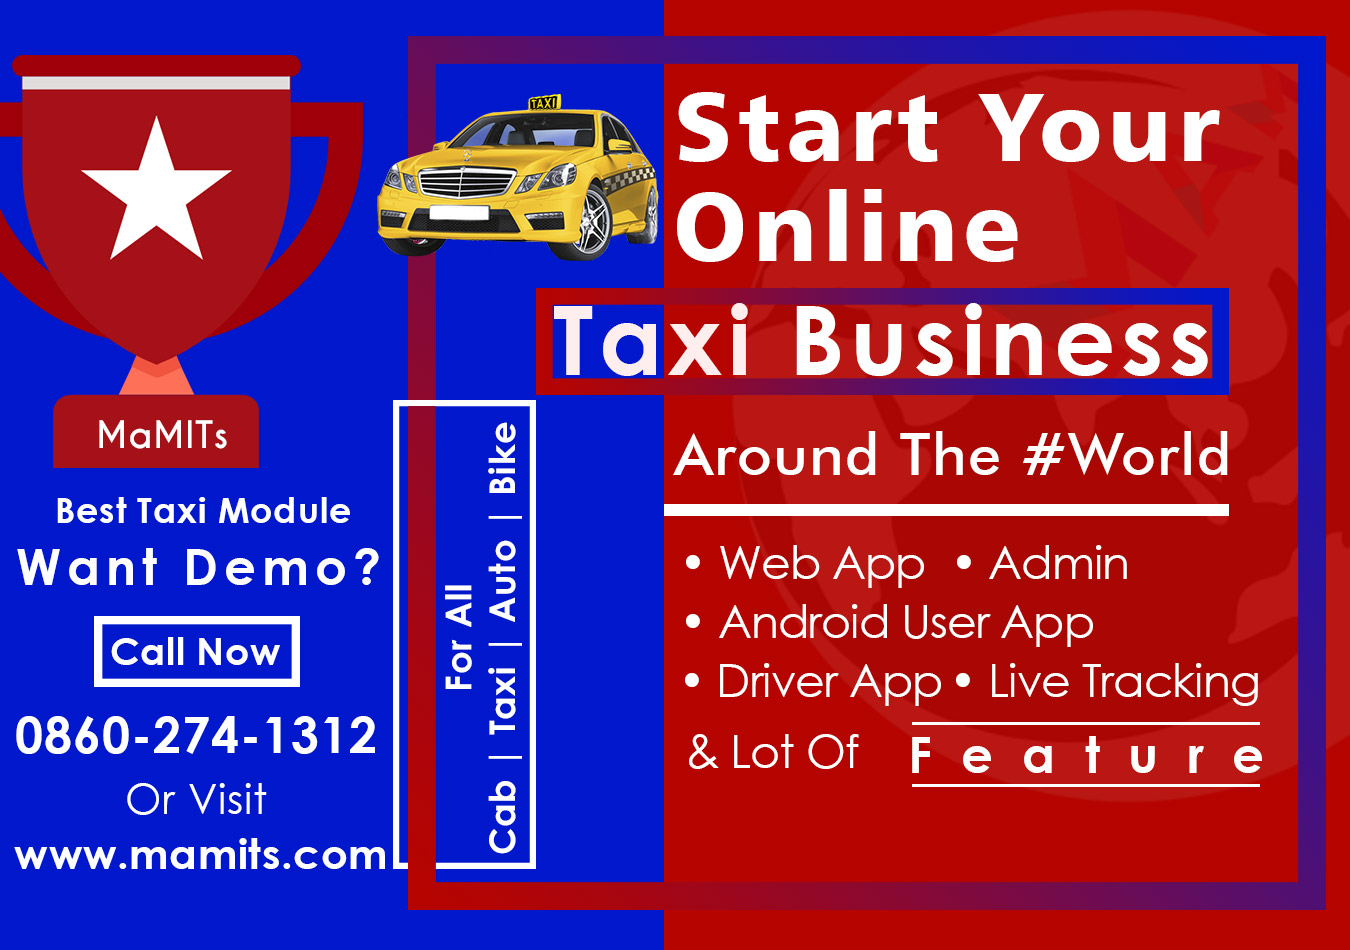 Taxi, Cab Booking App Development- Taxi-Cab Business Solution -MaMITs